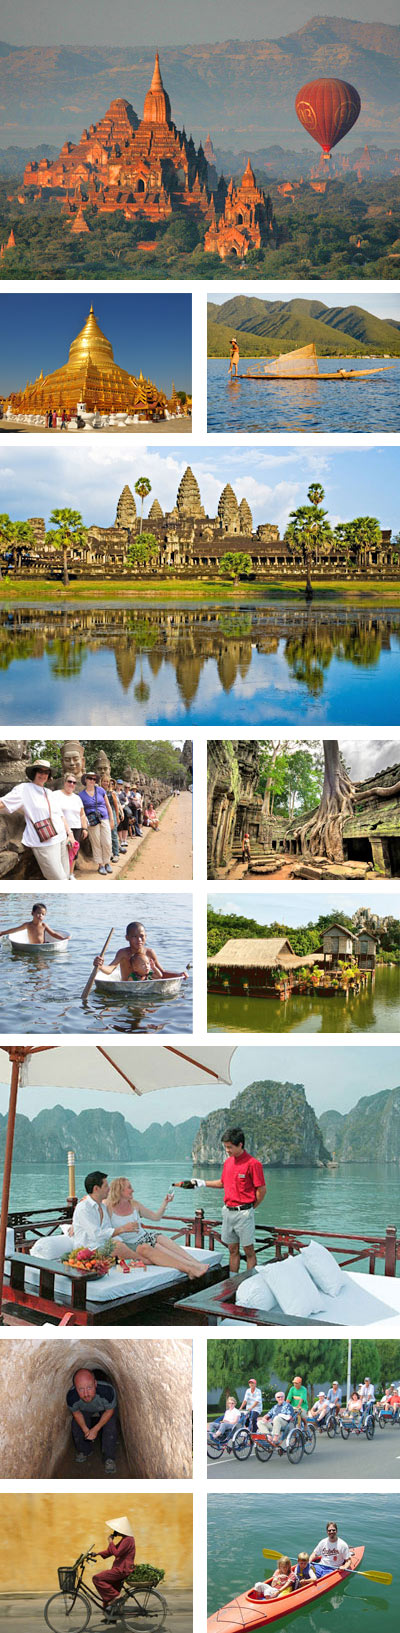 Myanmar Cambodia 19 Days Tour Package